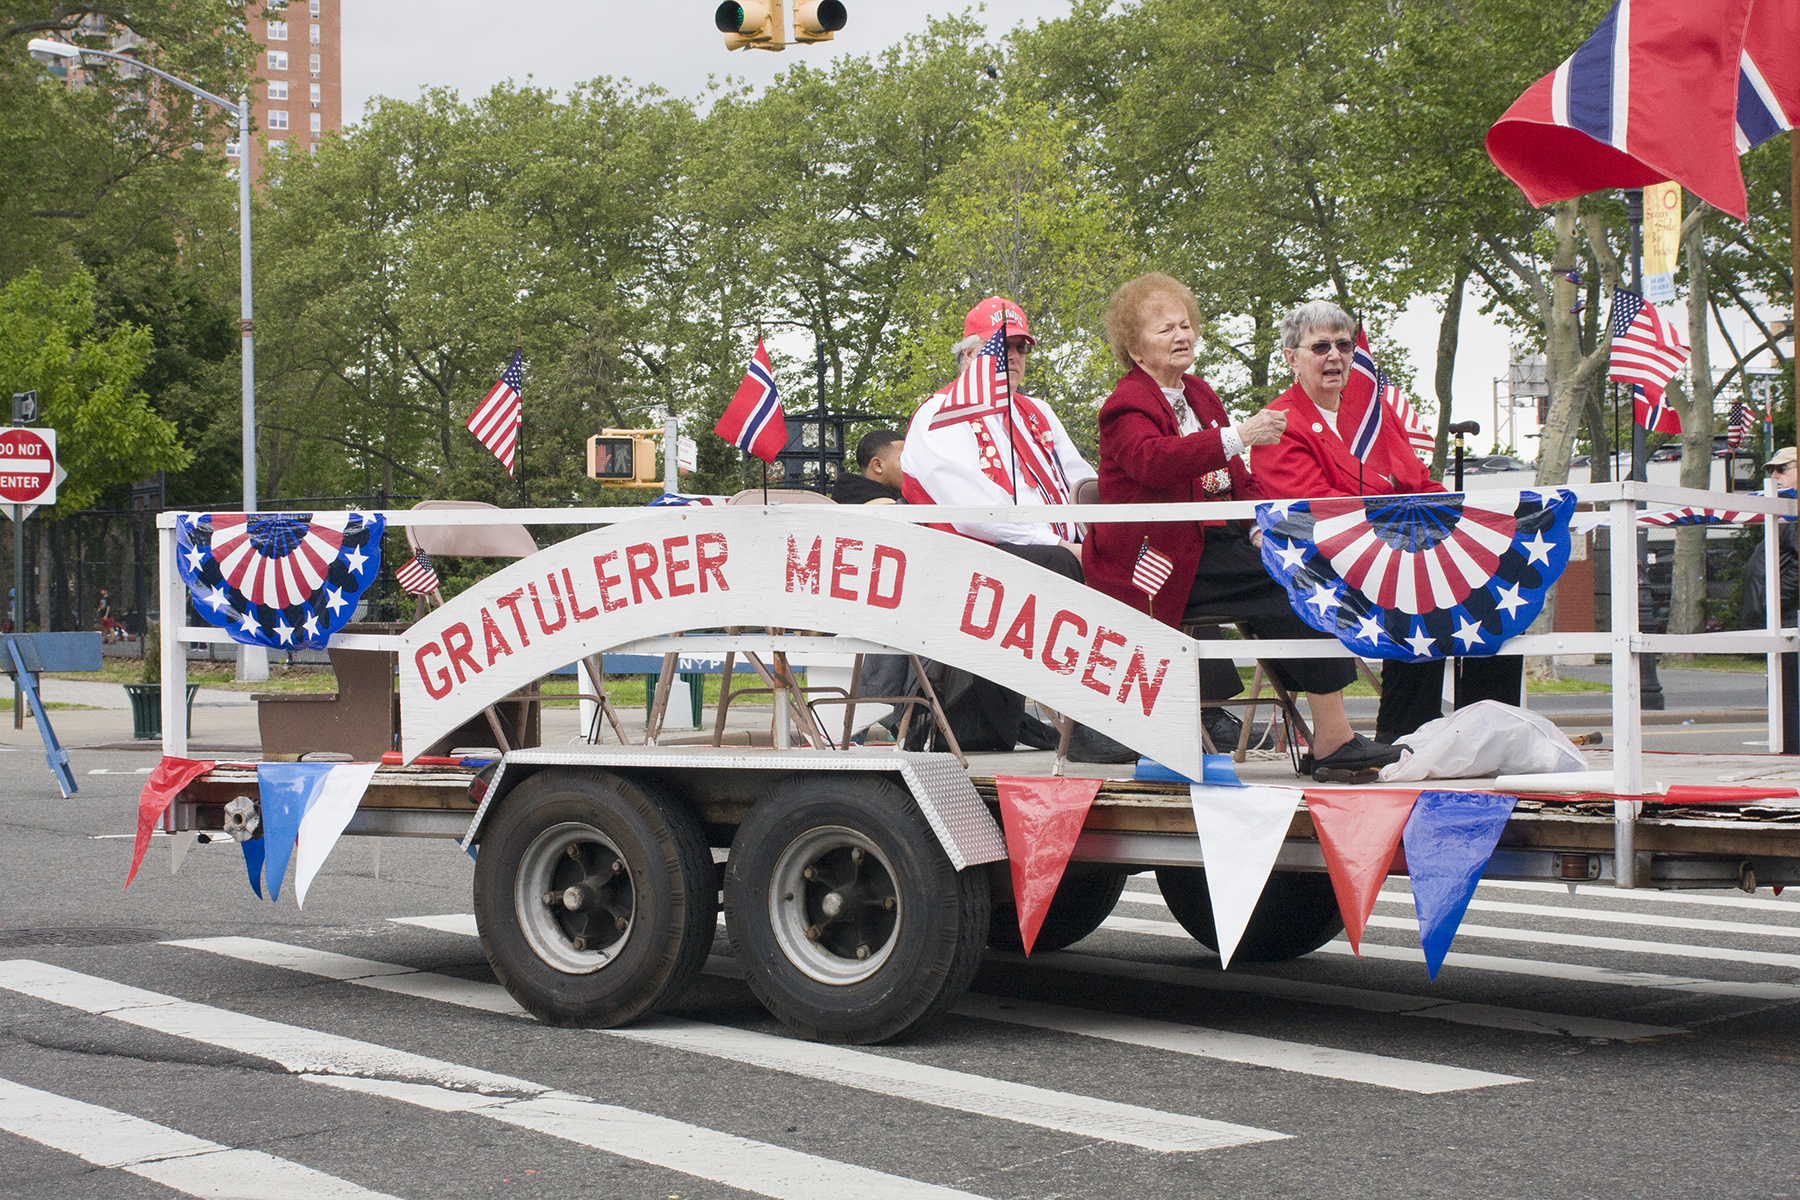 """""""Gratulerer med dagen"""" is the greeting exchanged on Norwegian National Day. It translates to """"congratulations with the day."""" This greeting is also traditionally exchanged on birthdays and new year's eve."""